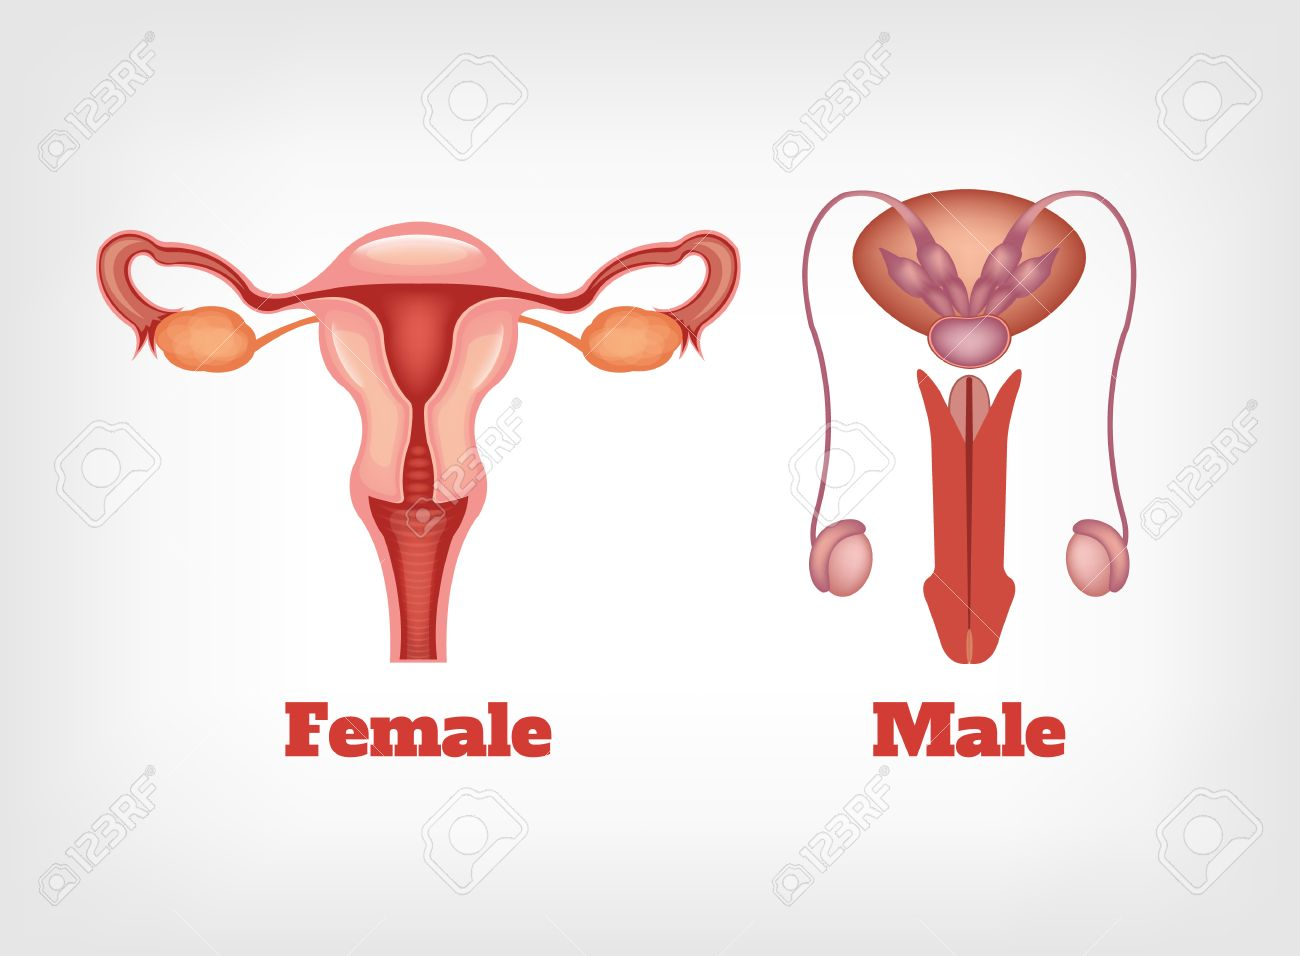 Reproduction in humans with pictures Free Image Hosting - Upload and Search Images